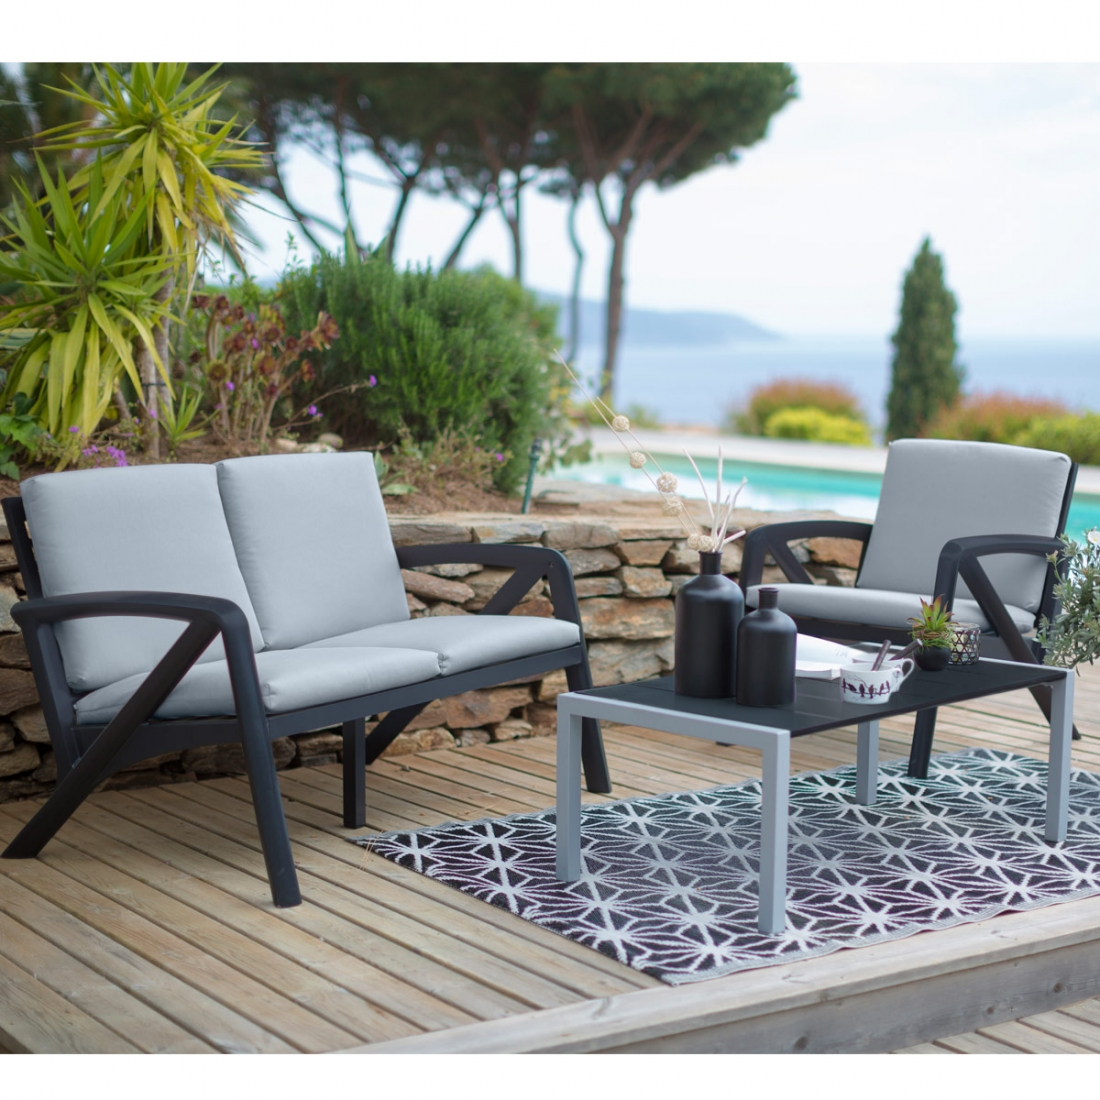 Salon de jardin lounge sunday barcelone design grosfillex for Salon de jardin exterieur